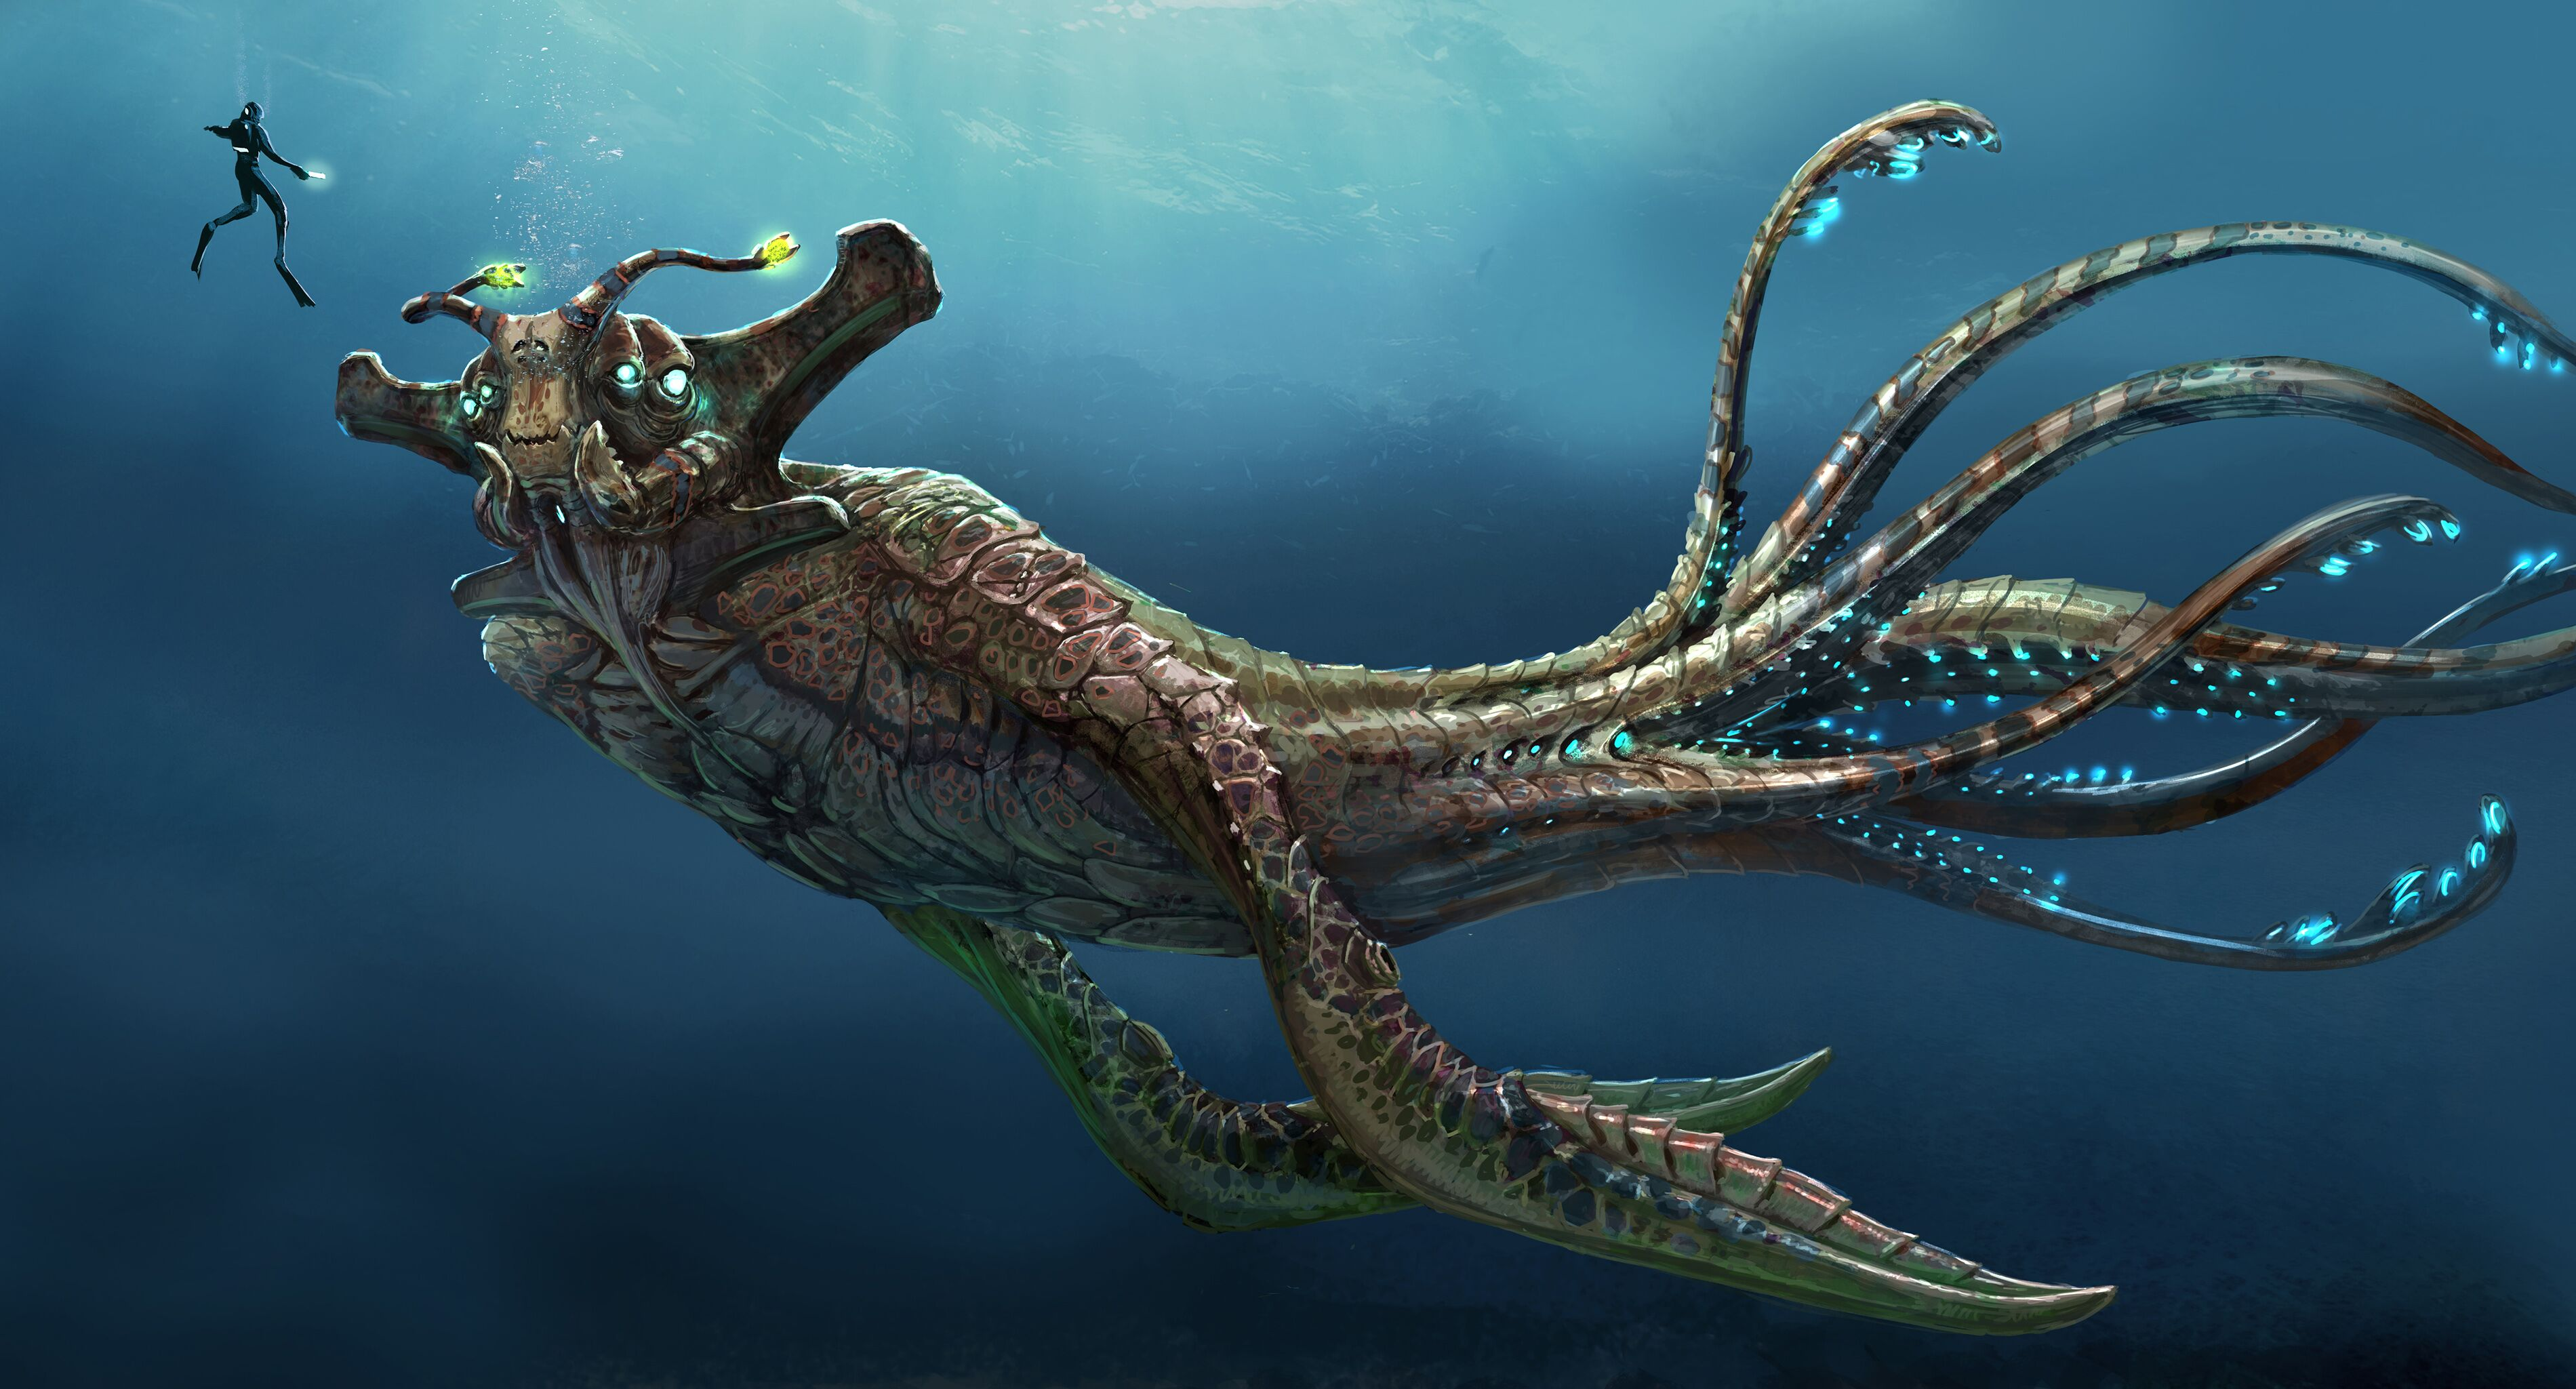 The Sea Emperor Leviathan—the final hope for eradicating the Kharaa virus and making it home.